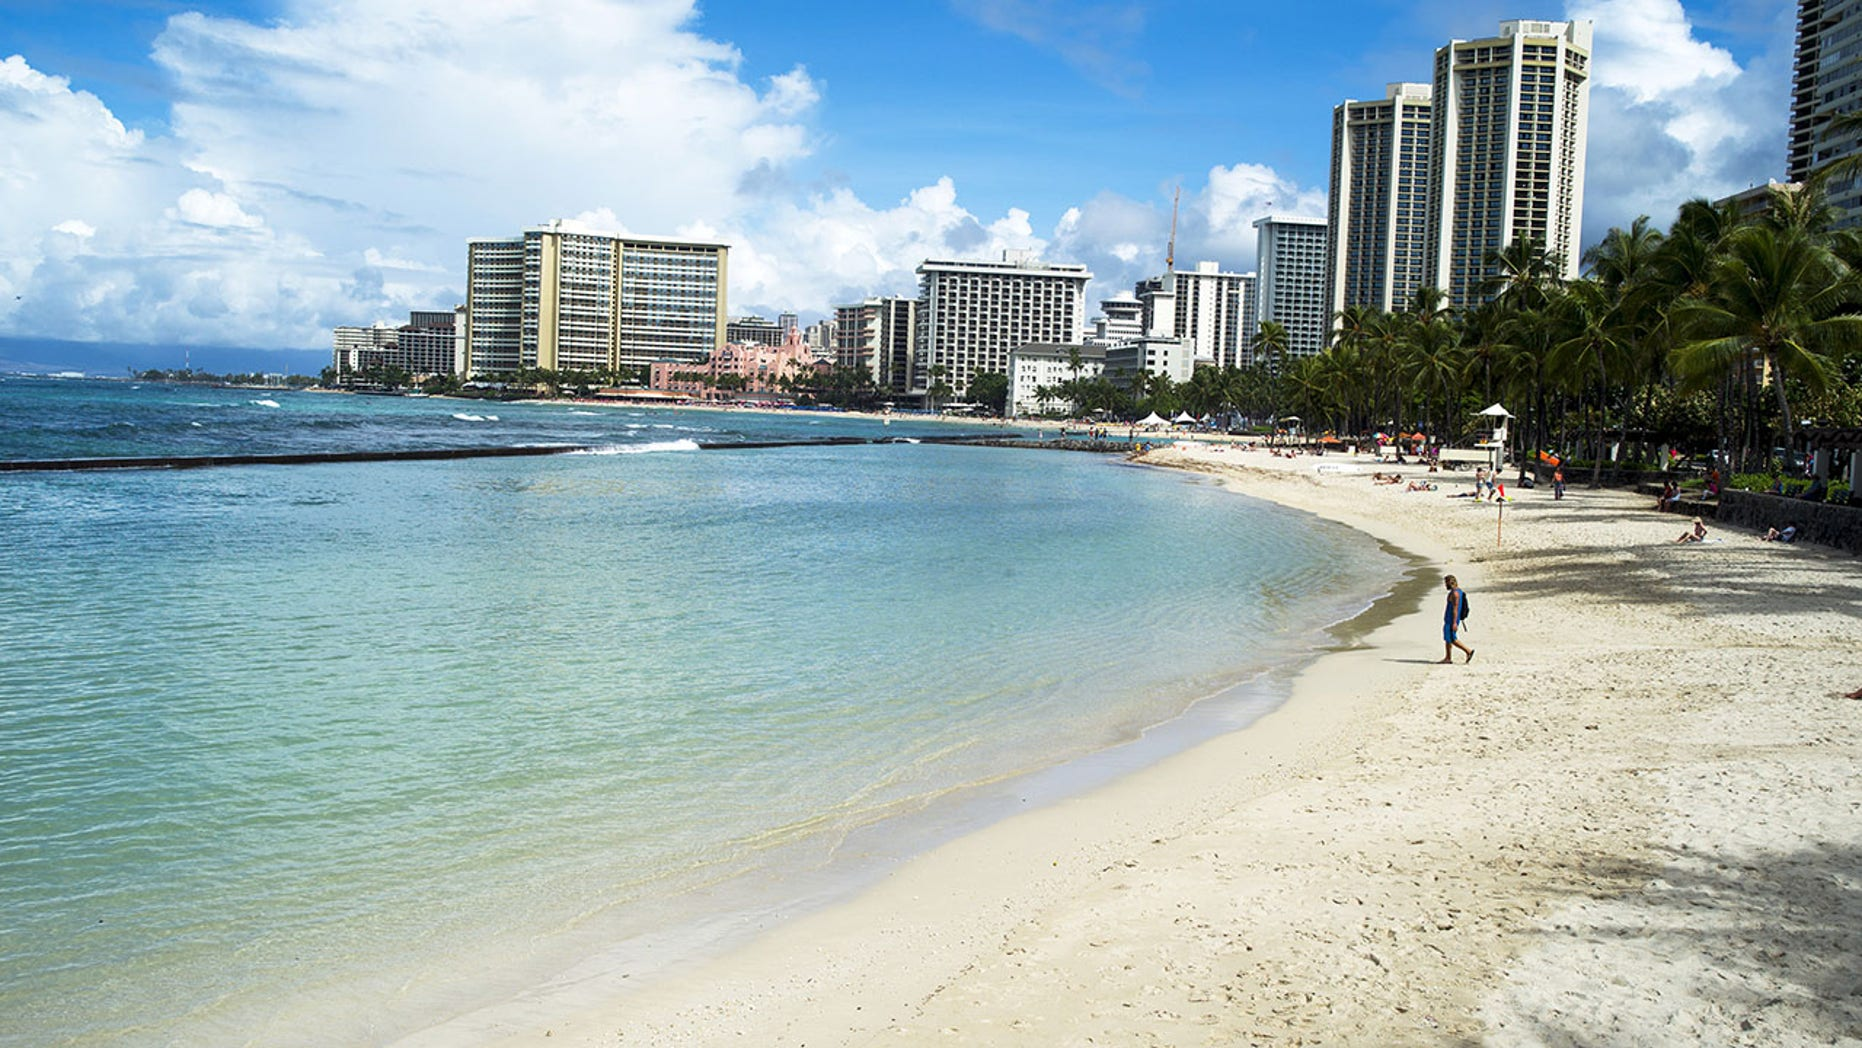 Honolulu's Waikiki Beach seems idyllic to many visitors, but crime concerns in the surrounding area grow at night, local officials say.